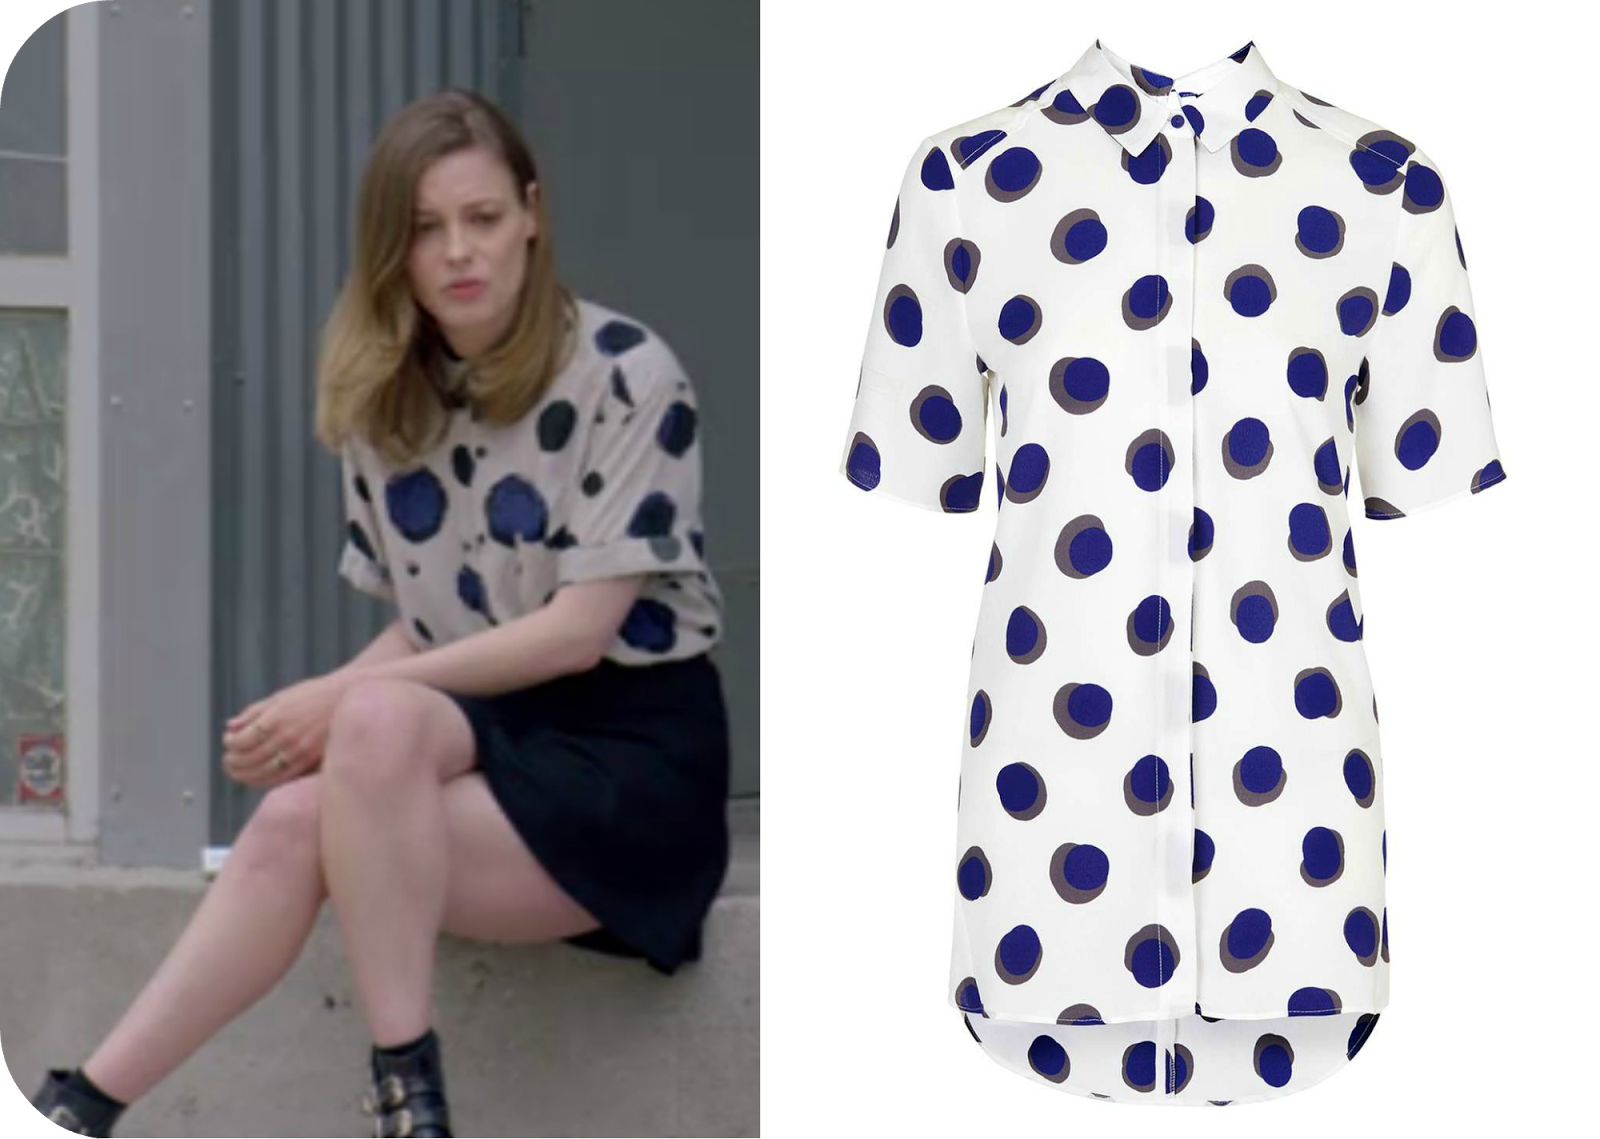 mickey netflix spotted dots shirt